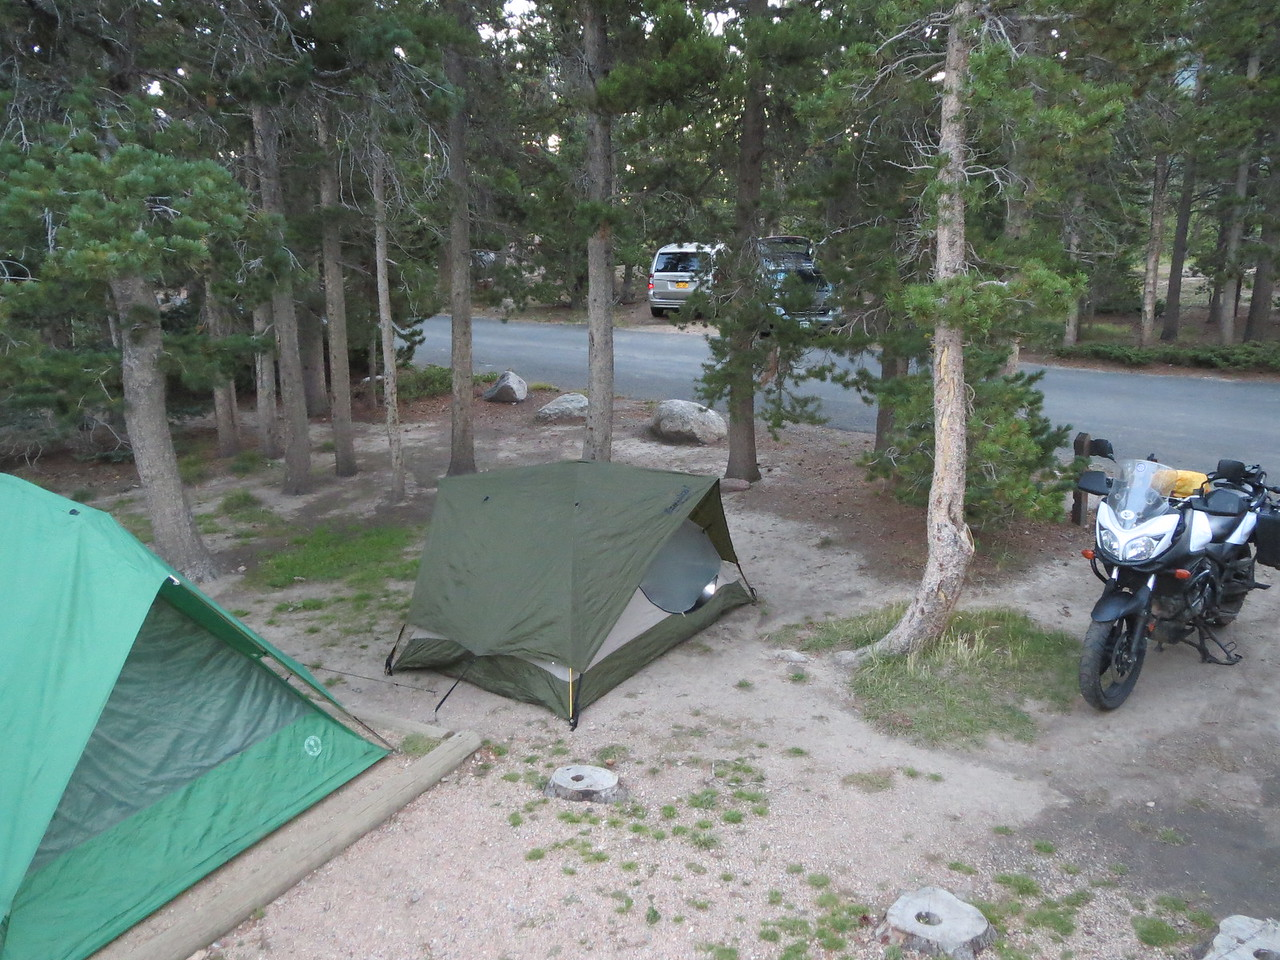 Day 3 (363 miles): We spent the night (of day 2) at the Long's Peak Campground in the RMNP.